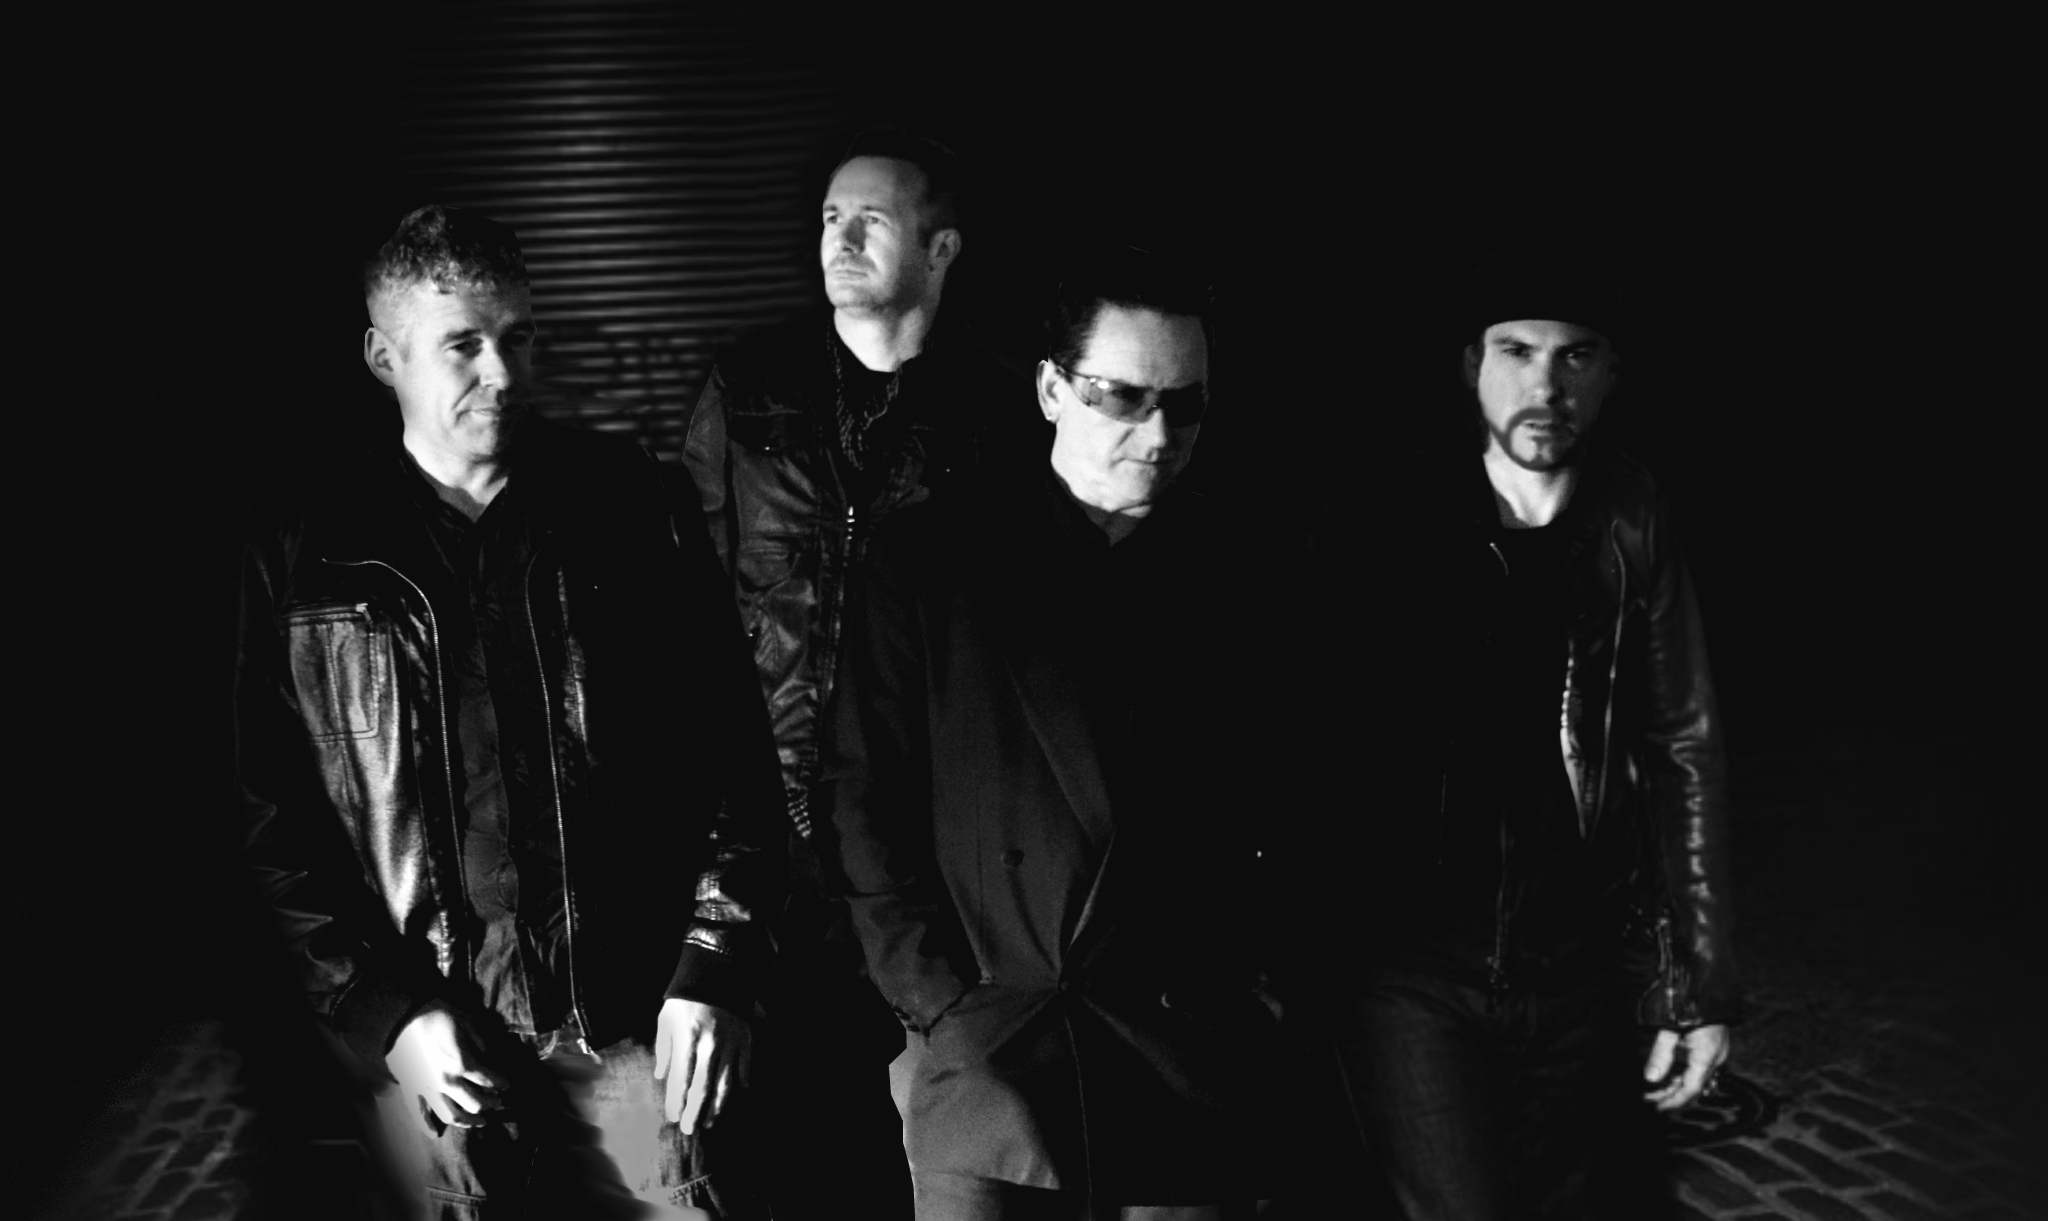 Rattle and Hum U2 Tribute band